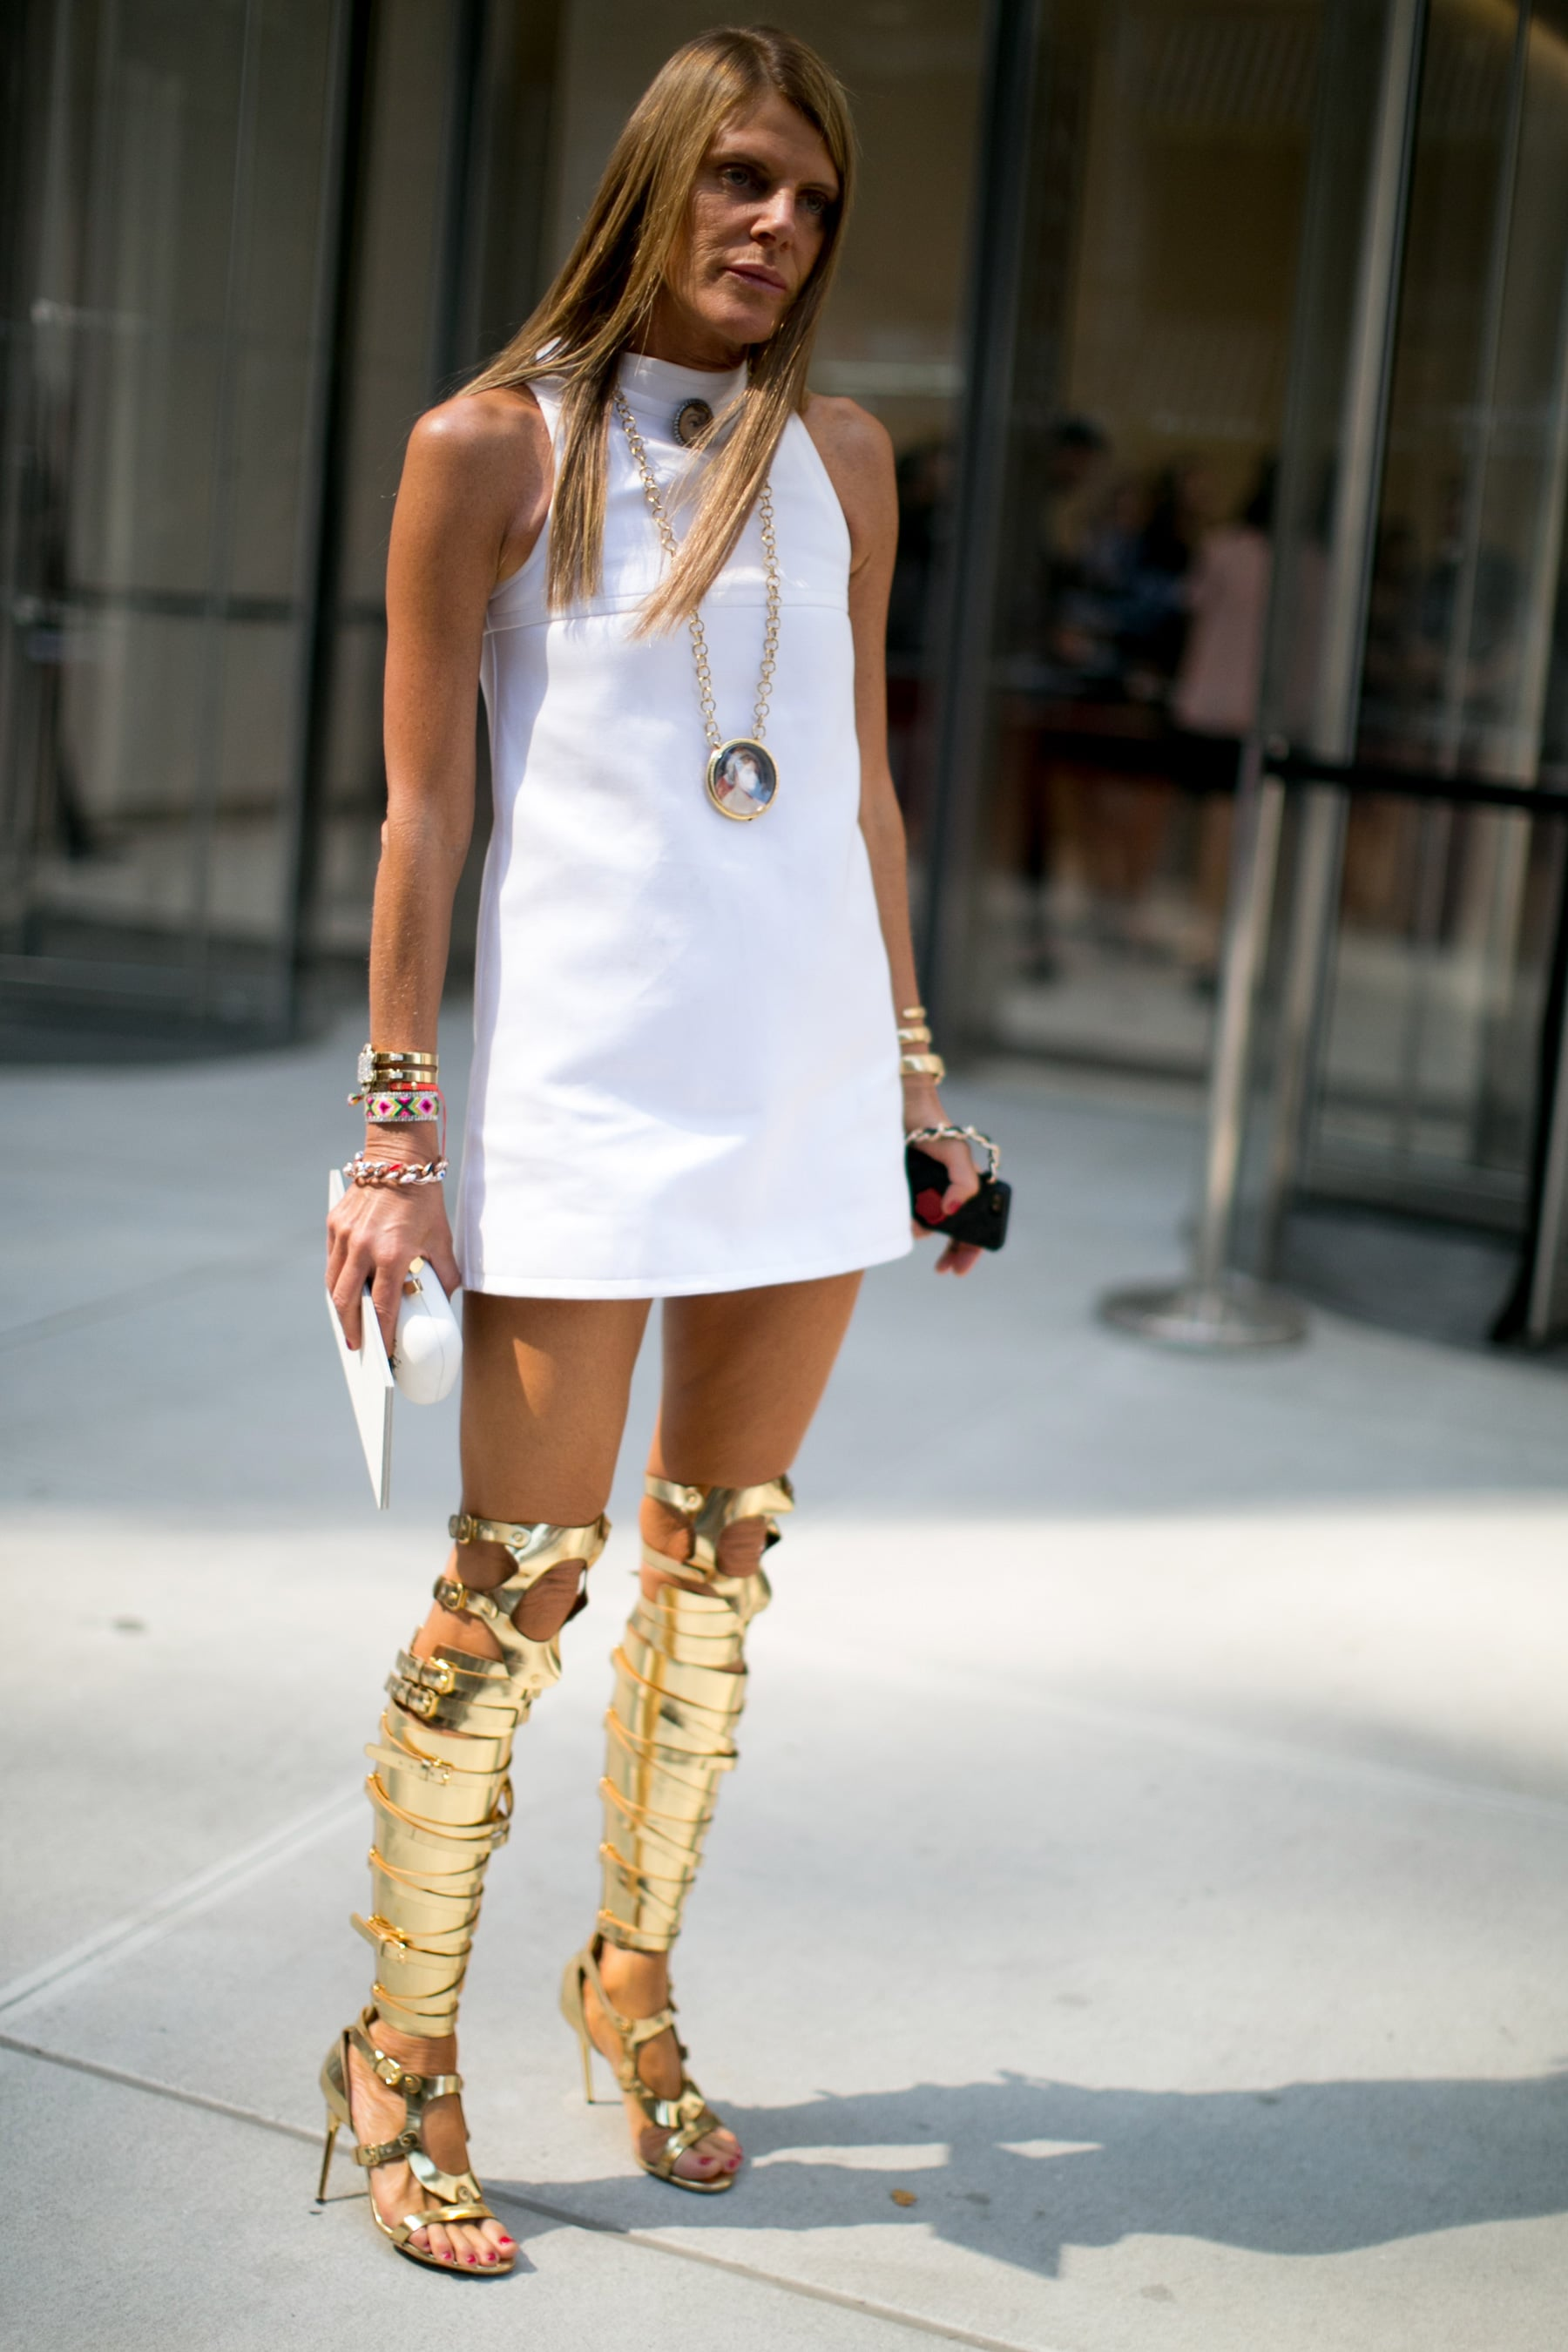 Anna Dello Russo S Lwd May Have Been Demure But Those Tom